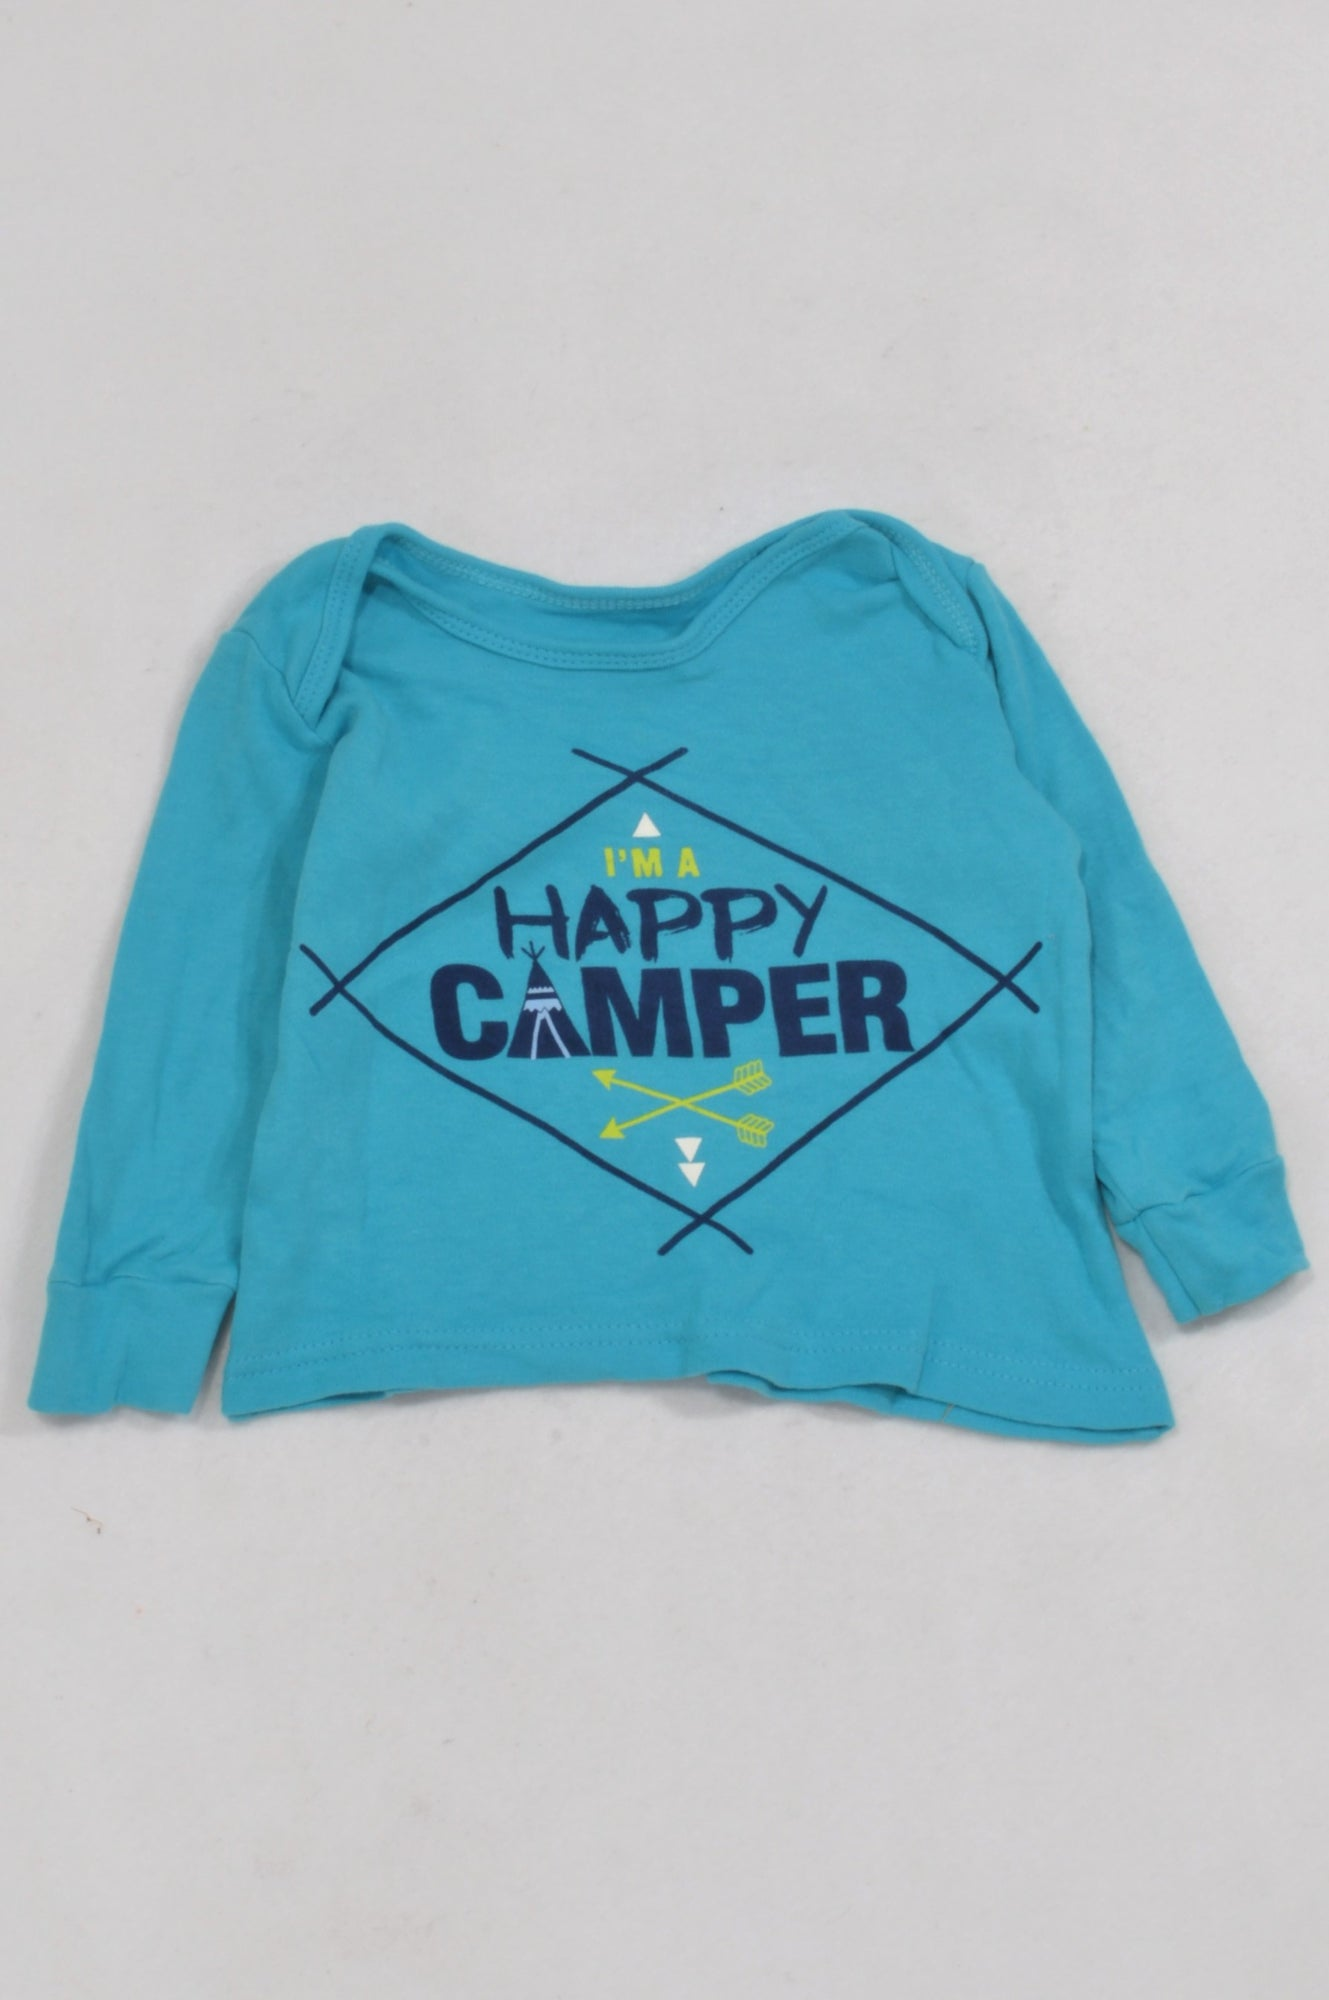 Woolworths Blue Happy Camper T-shirt Boys 3-6 months